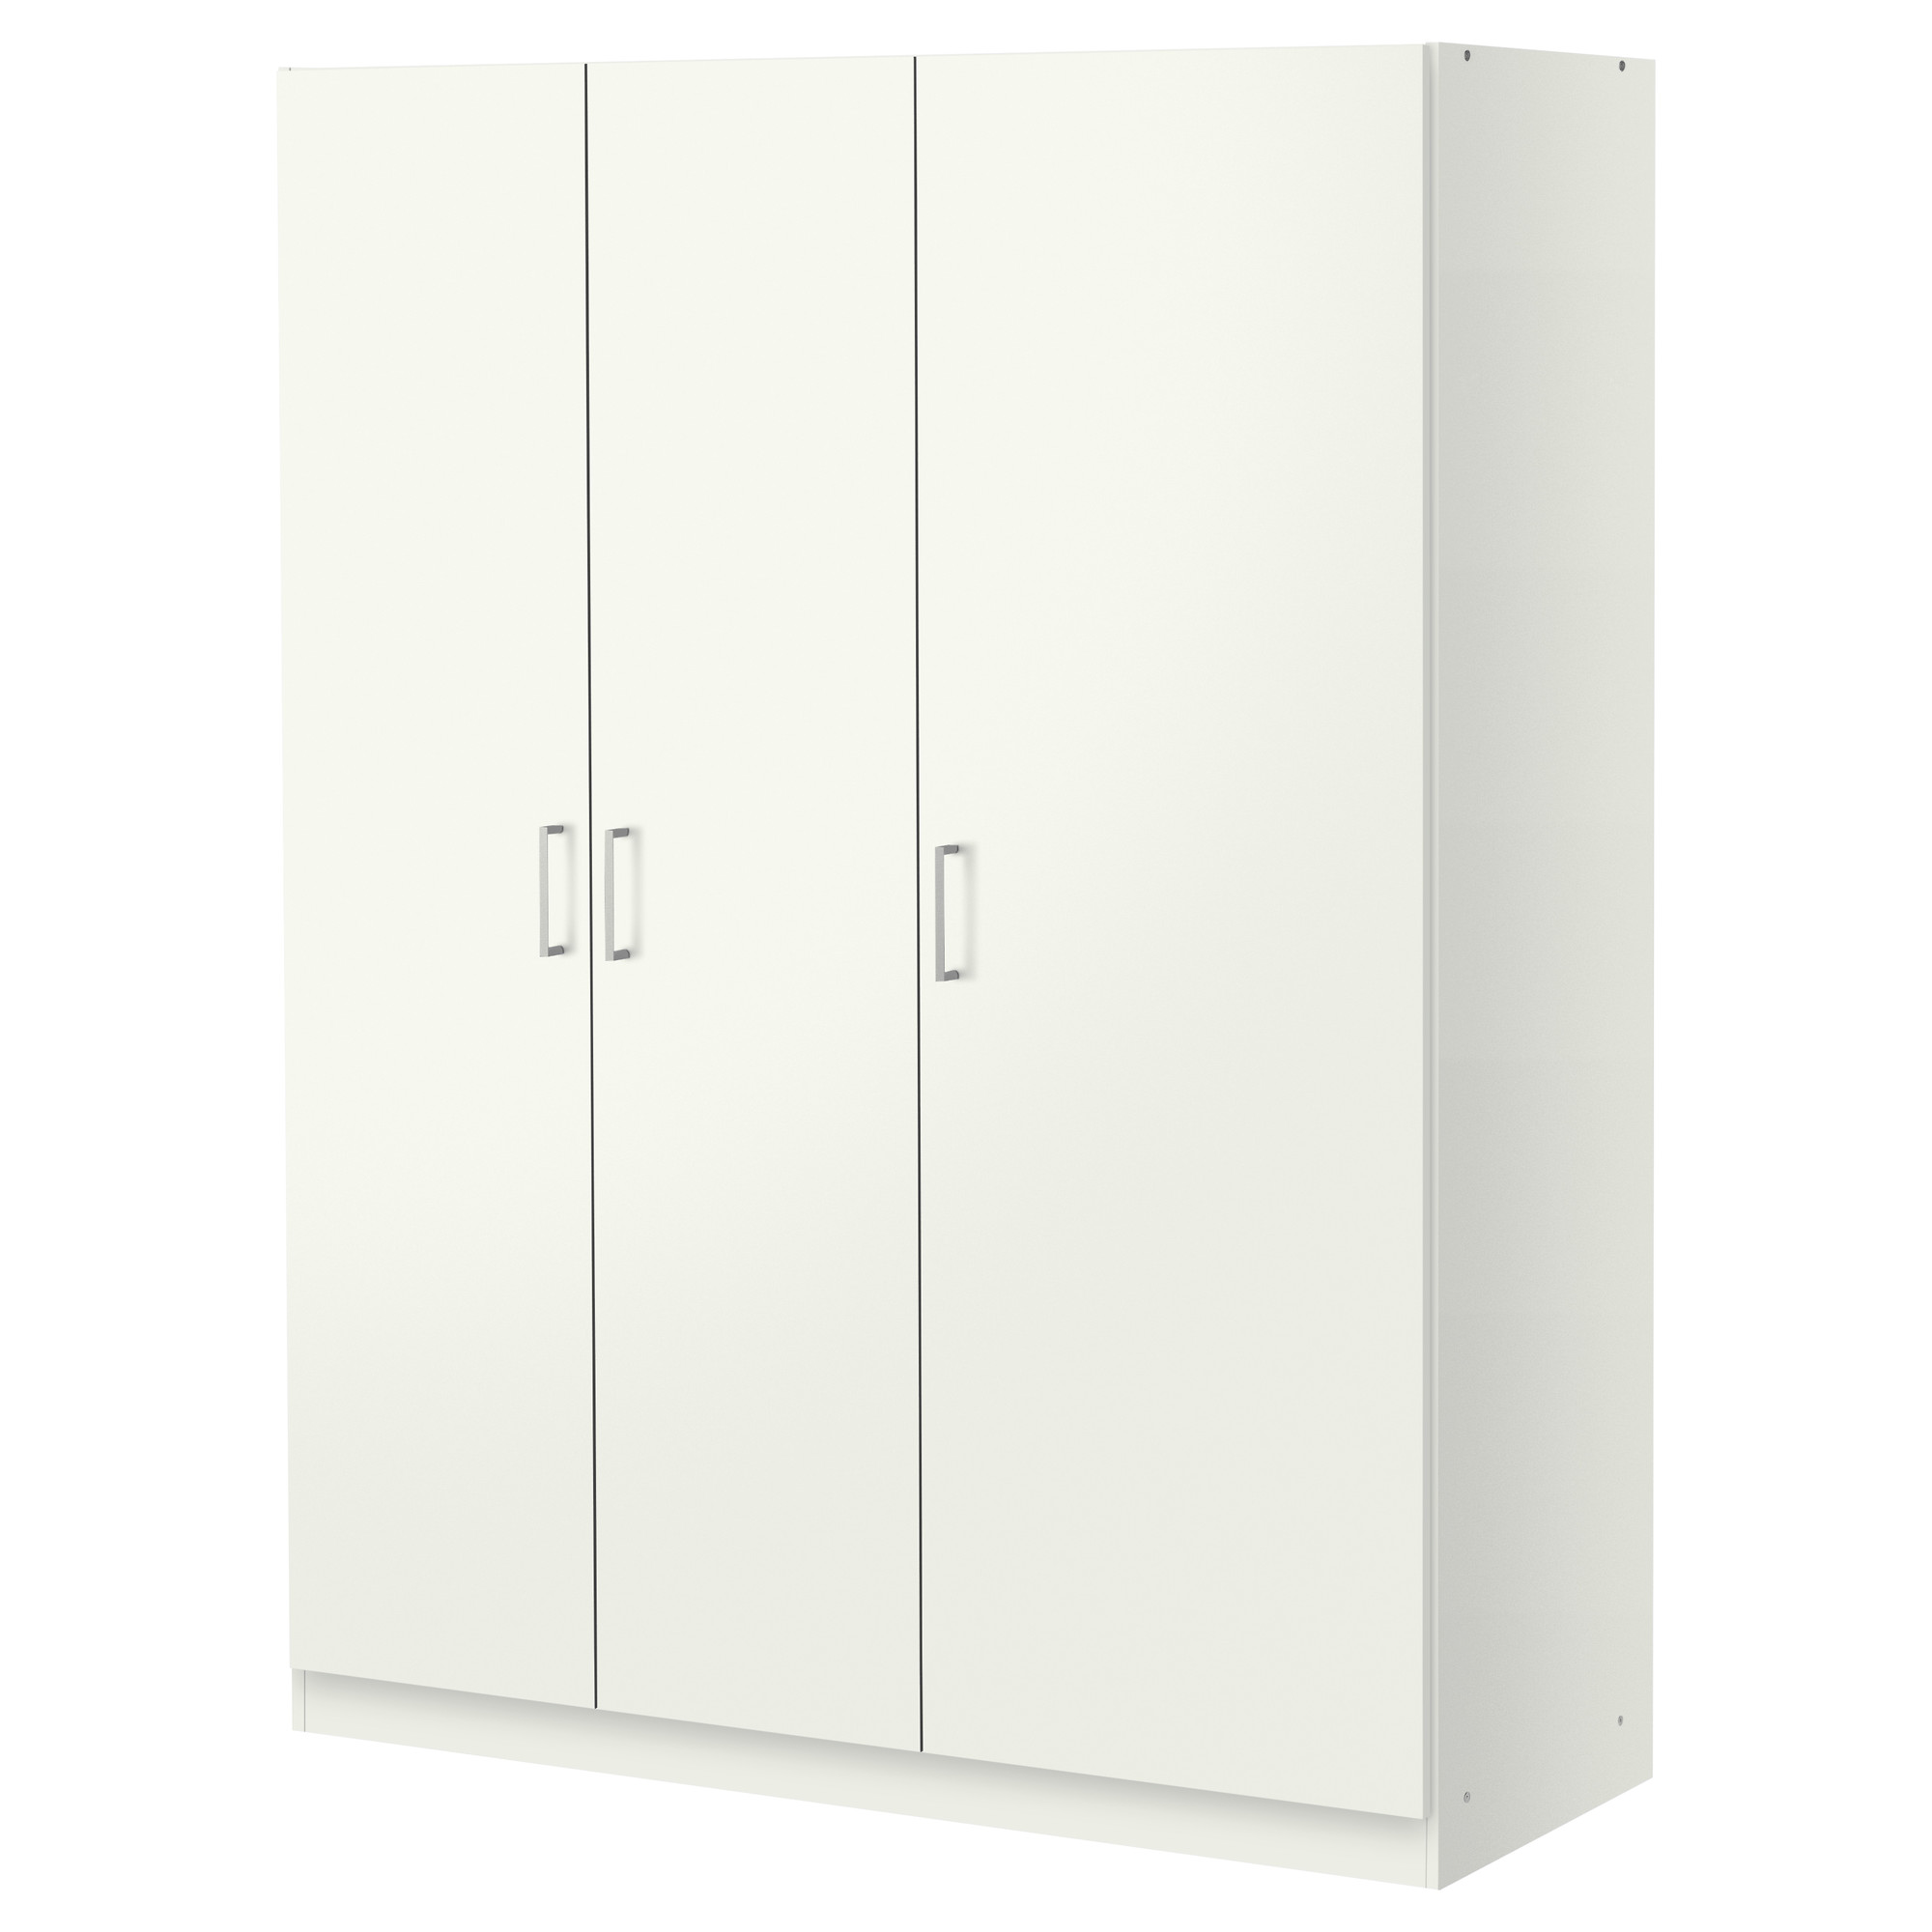 white wardrobes ikea dombås wardrobe adjustable shelves make it easy to customise the space KYQQLGI